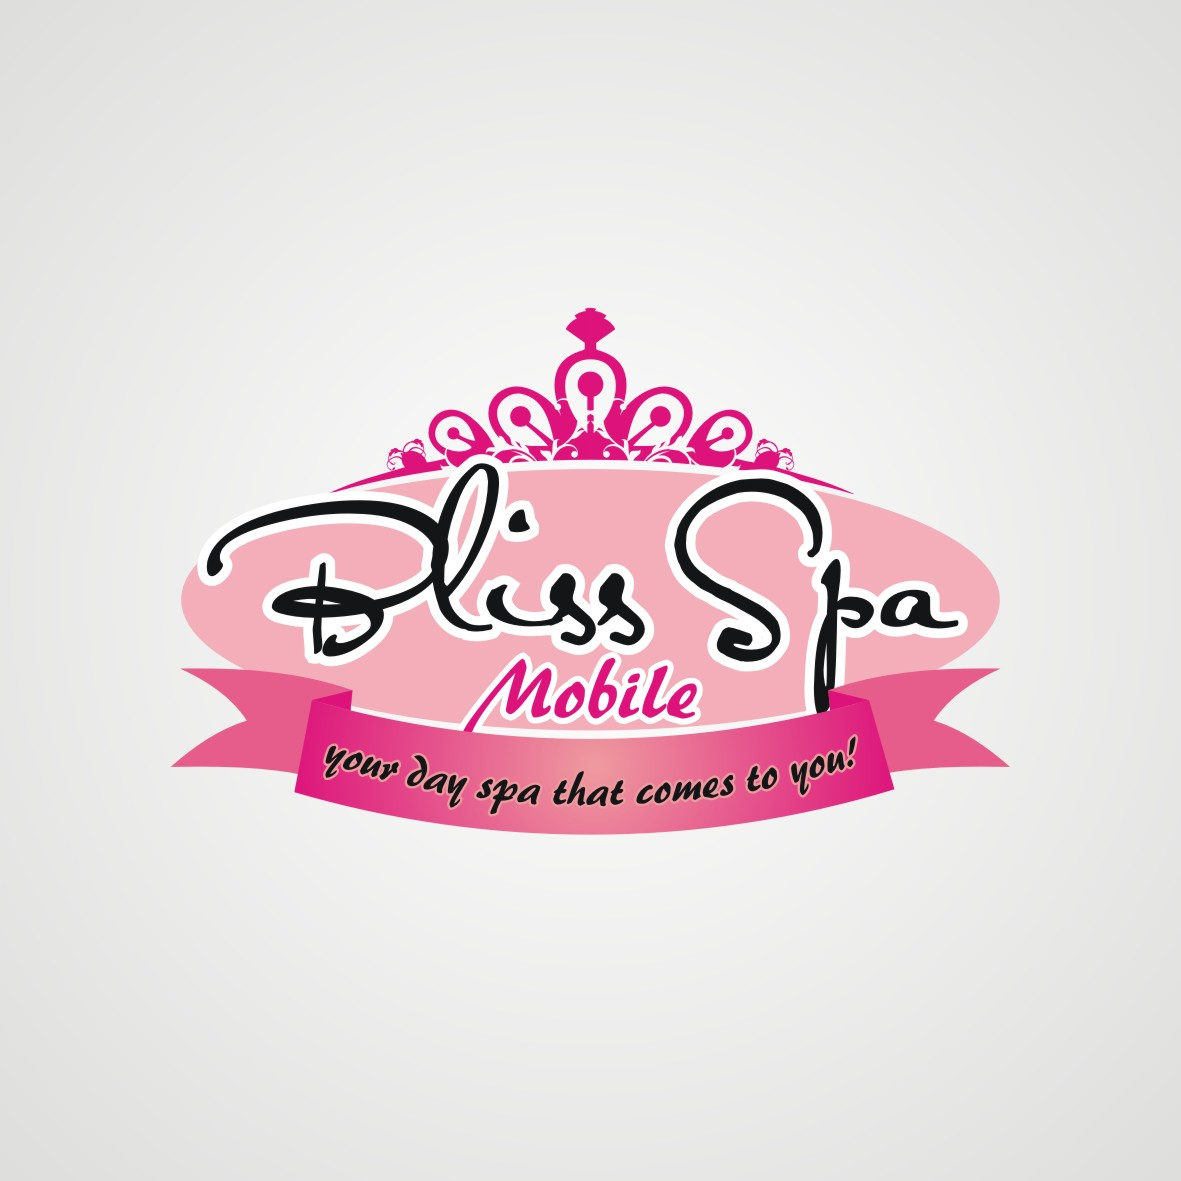 Logo Design by arteo_design - Entry No. 118 in the Logo Design Contest New Logo Design for Bliss Spa Mobile.